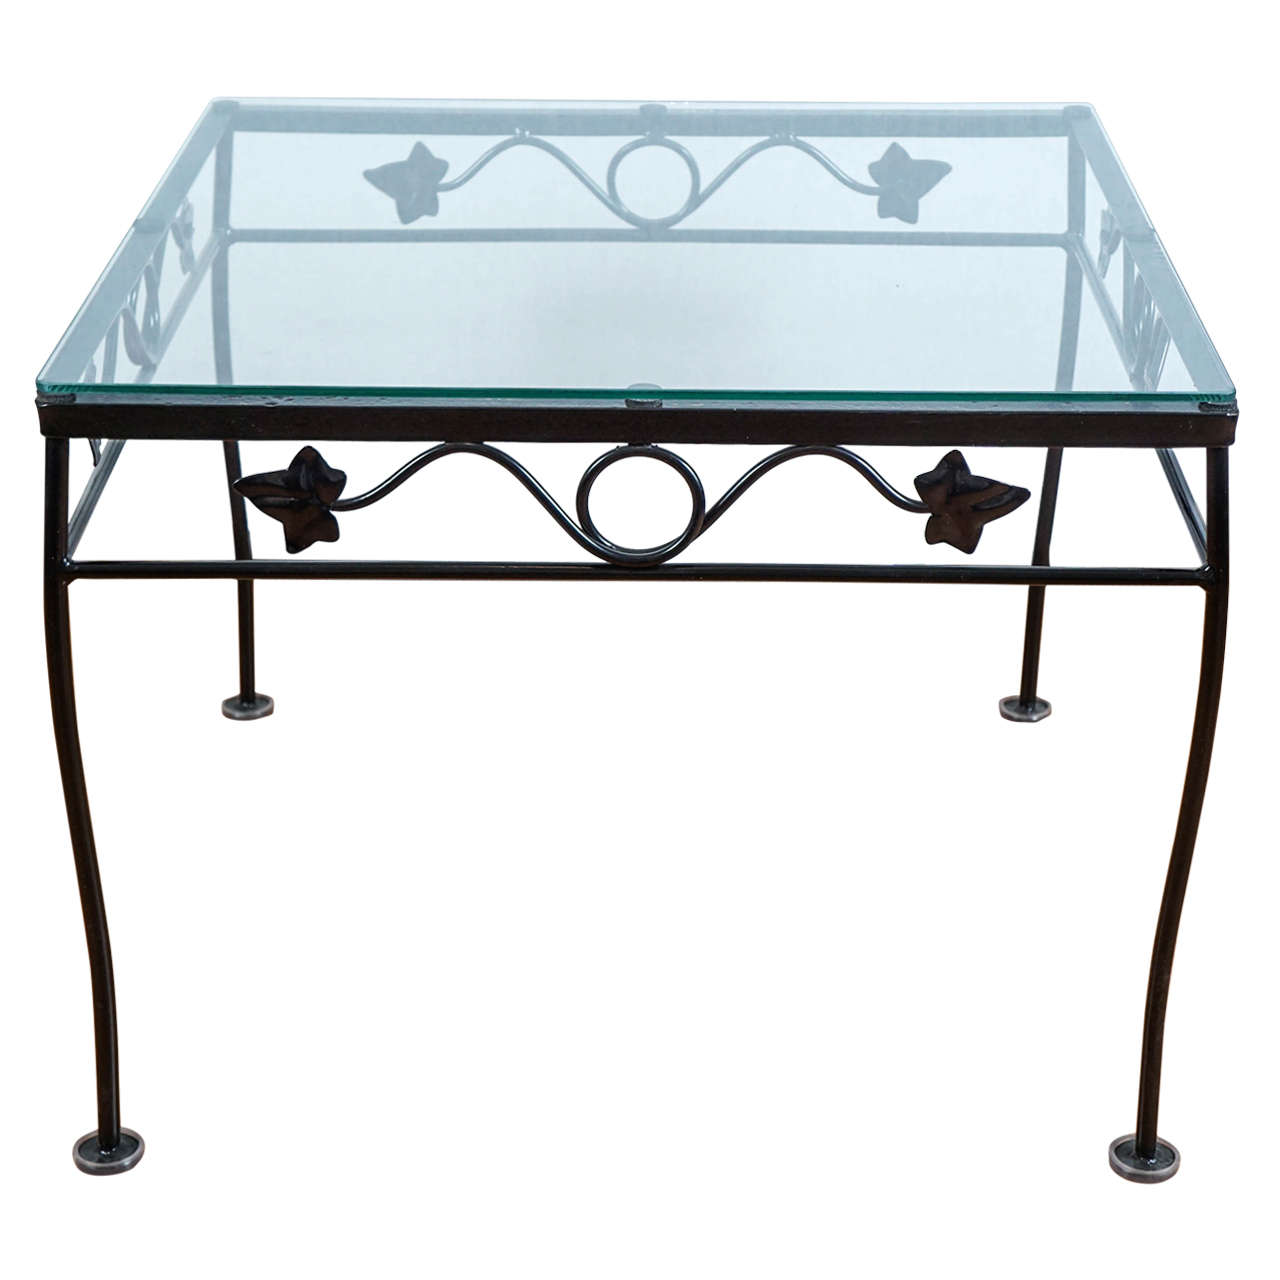 Black wrought iron side table for sale at 1stdibs for Wrought iron side table